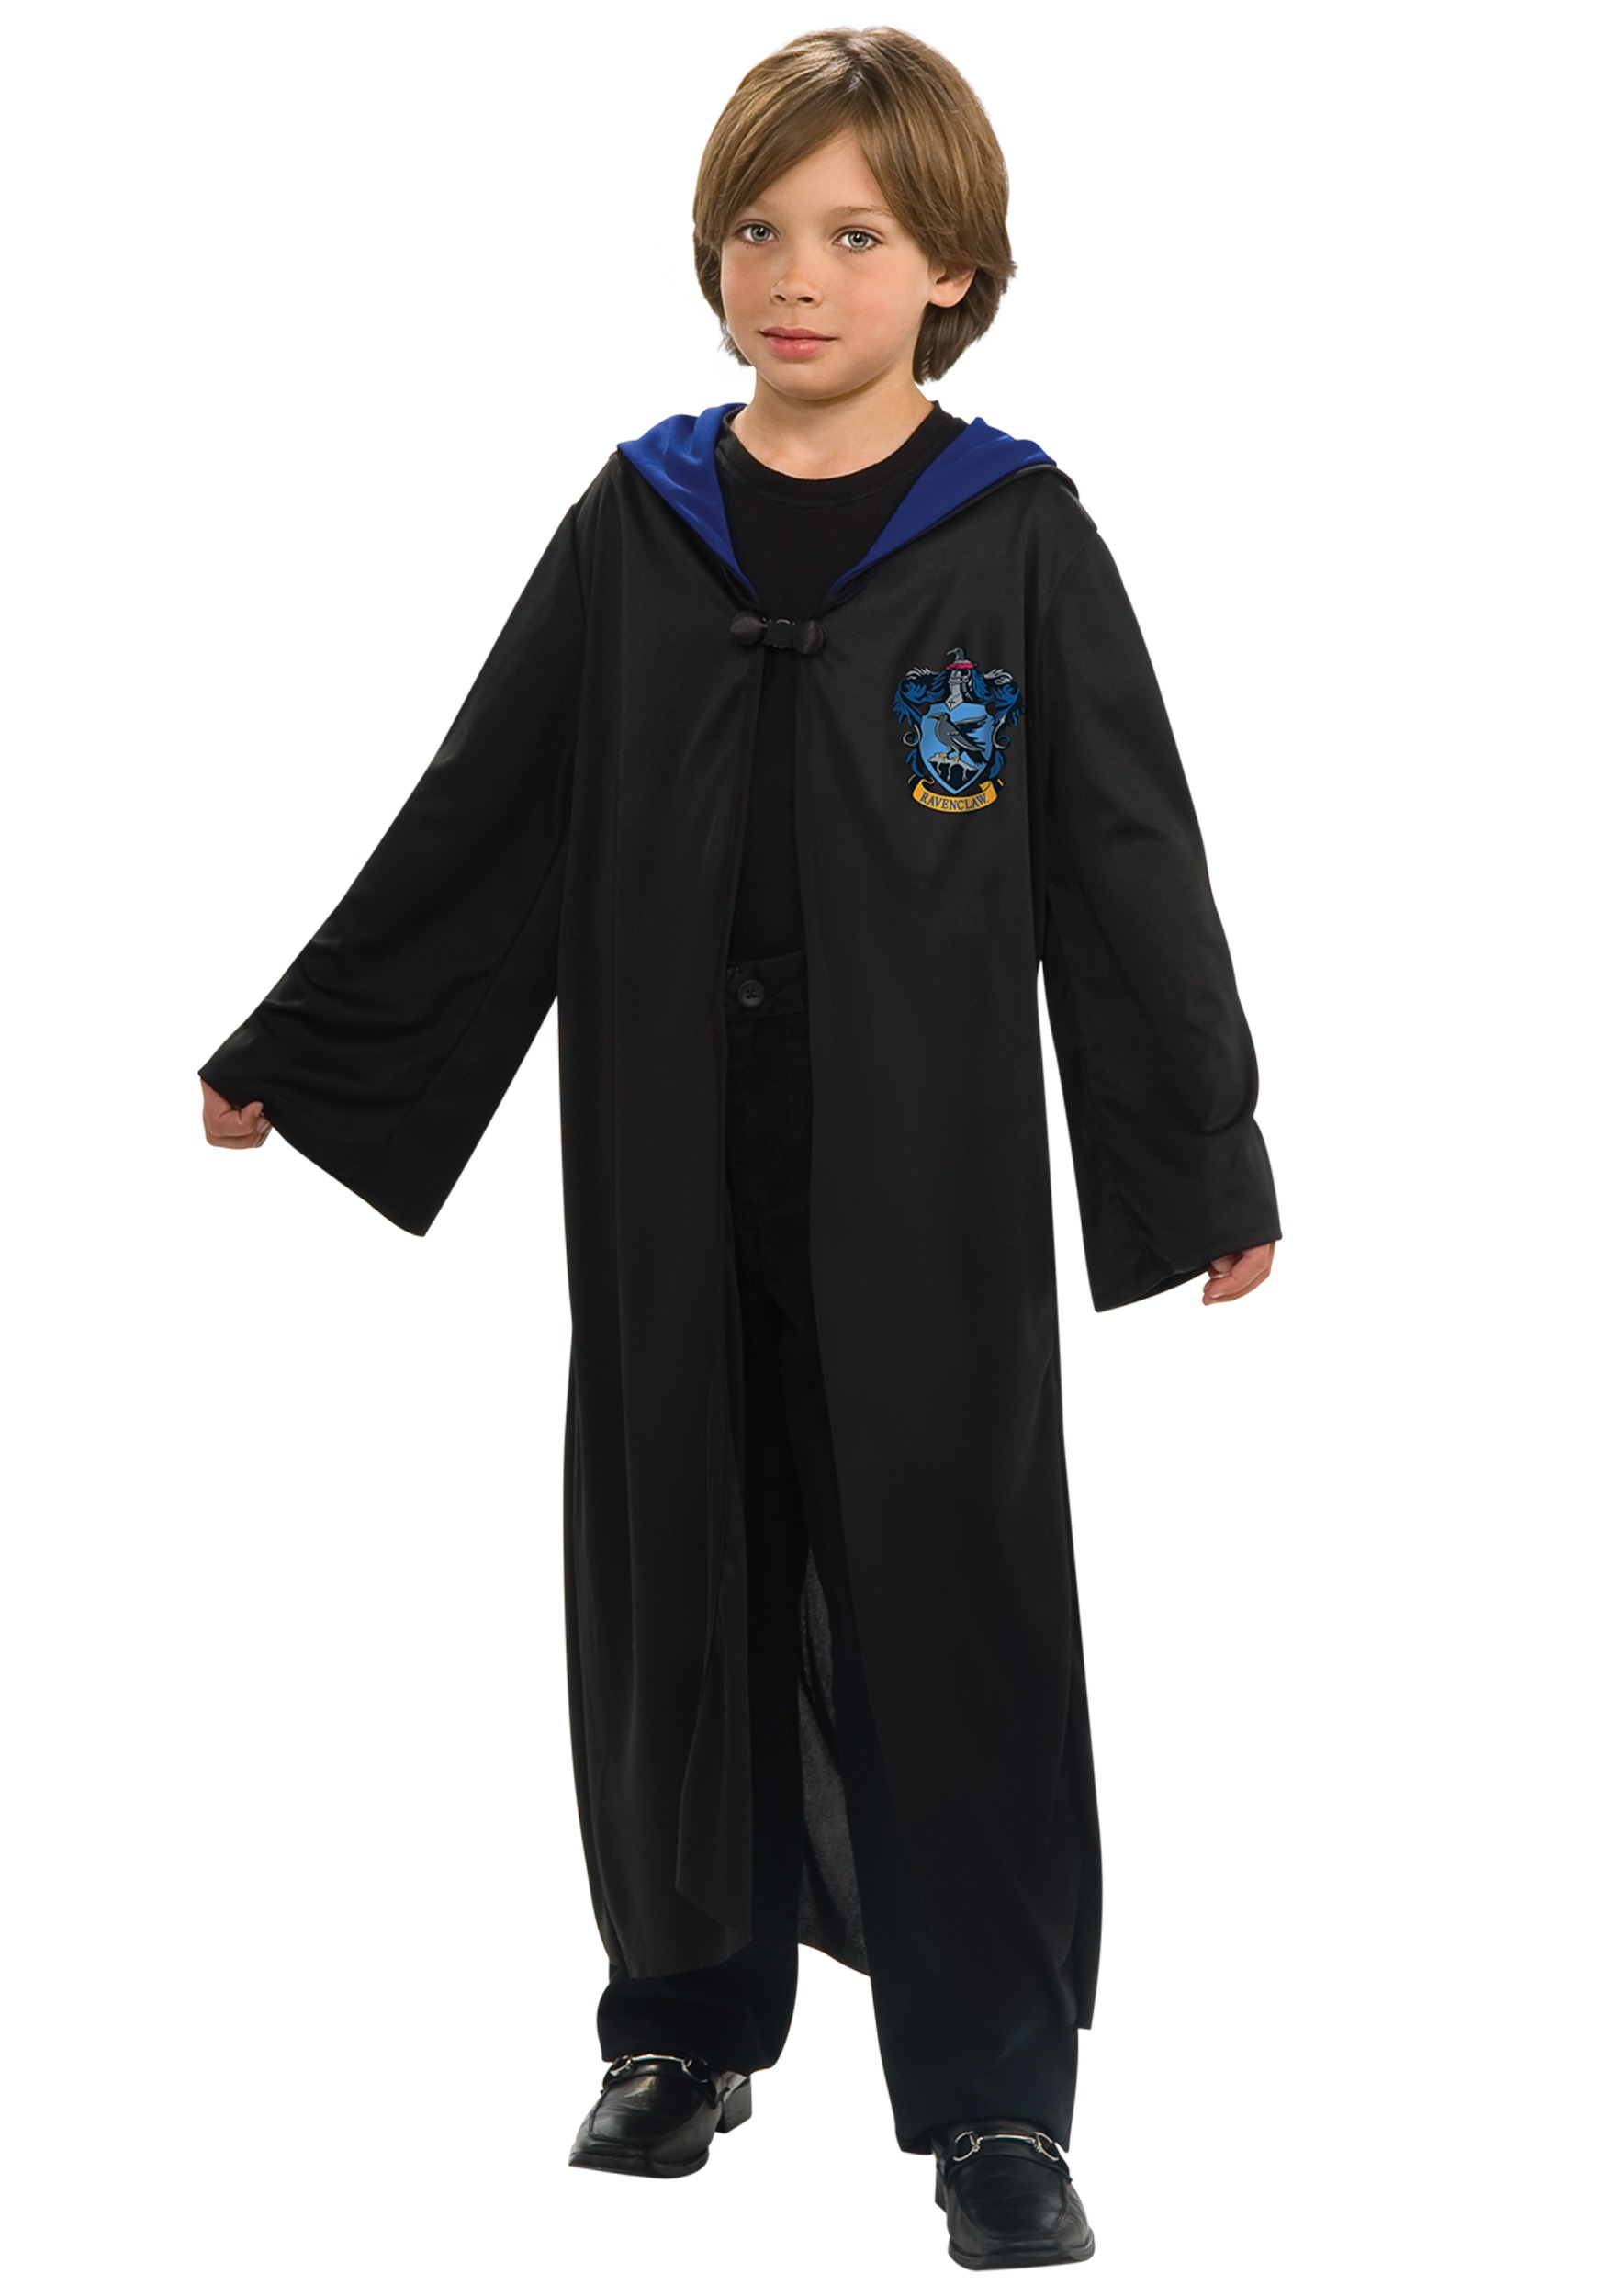 Child Deluxe Hermione Costume. £28.99 · Child Ravenclaw Robe